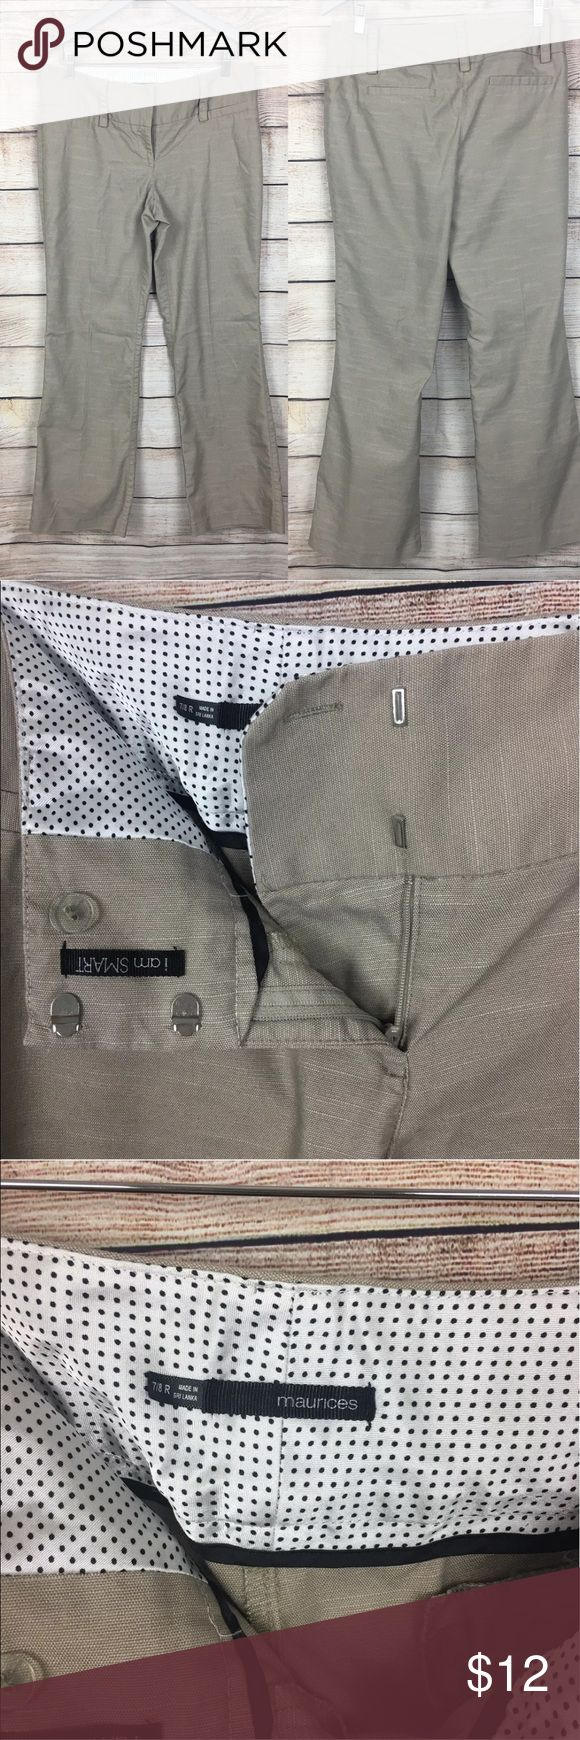 """Maurices Jr. I Am Smart Khaki Trouser Pants Sz7/8R Maurices Juniors I Am Smart Khaki Trouser Pants size 7 / 8 R  No stains or flaws   Rise: 9""""  Waist:34""""  Inseam: 30""""  Leg opening: 10"""" Maurices Pants Straight Leg"""